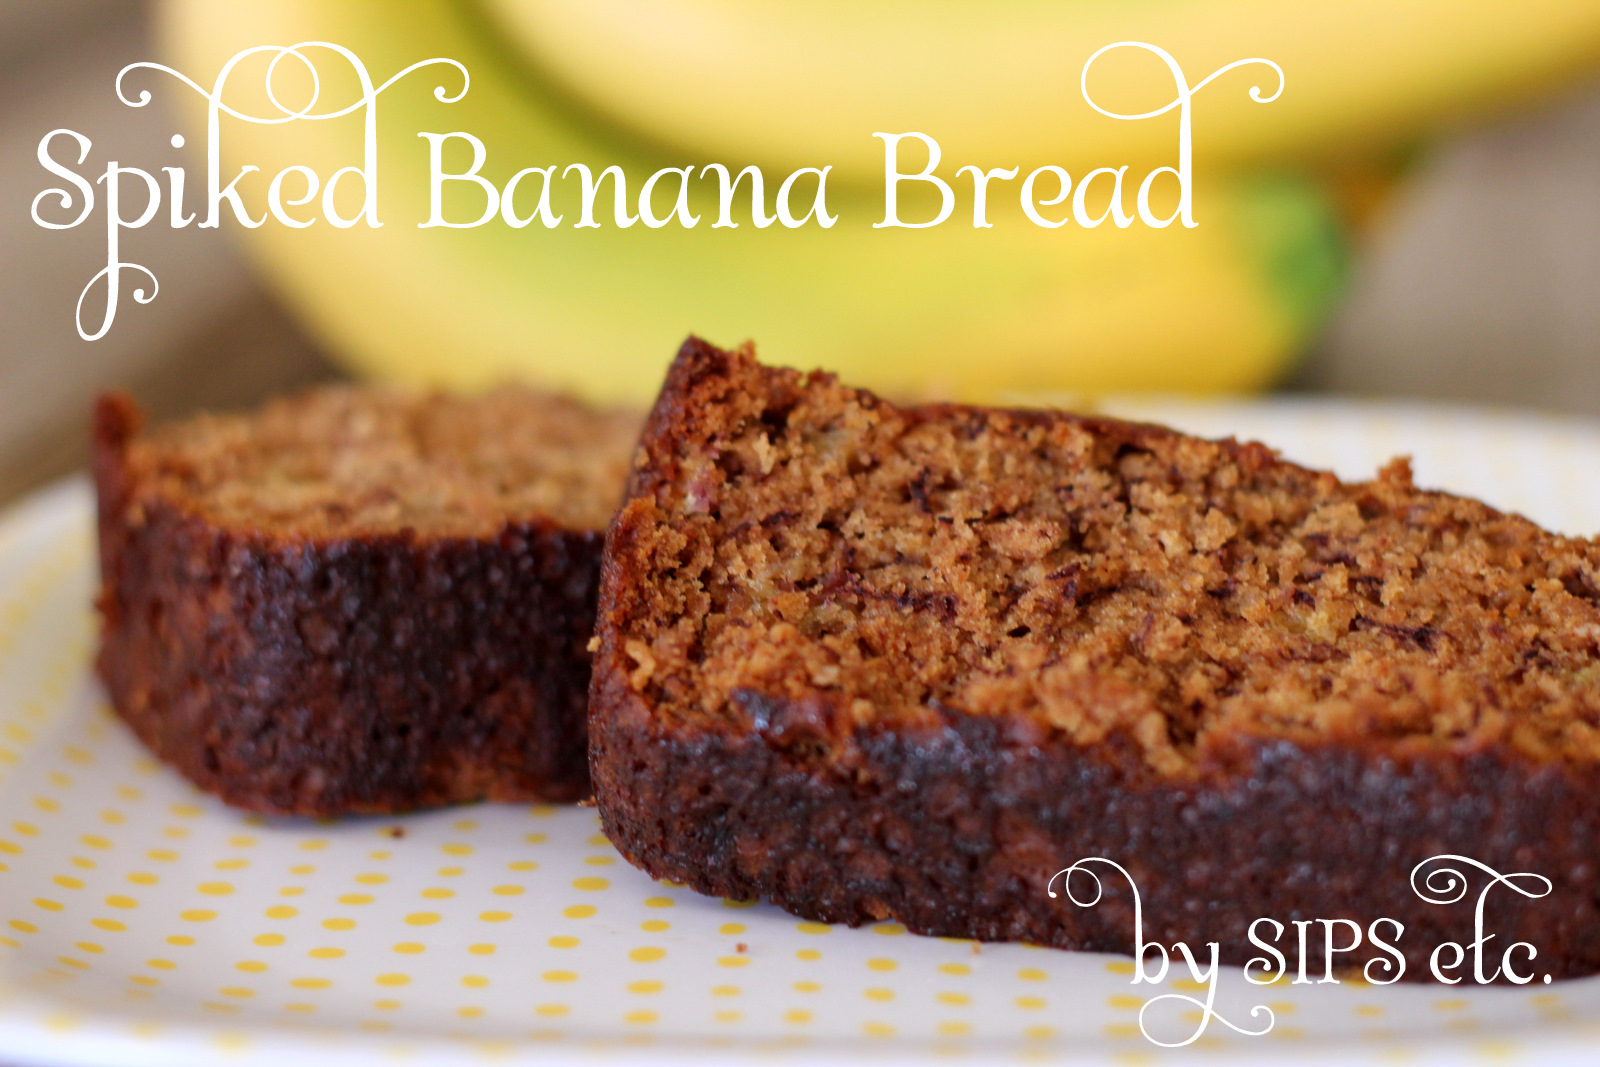 sips etc.: Bites: Spiked Banana Bread